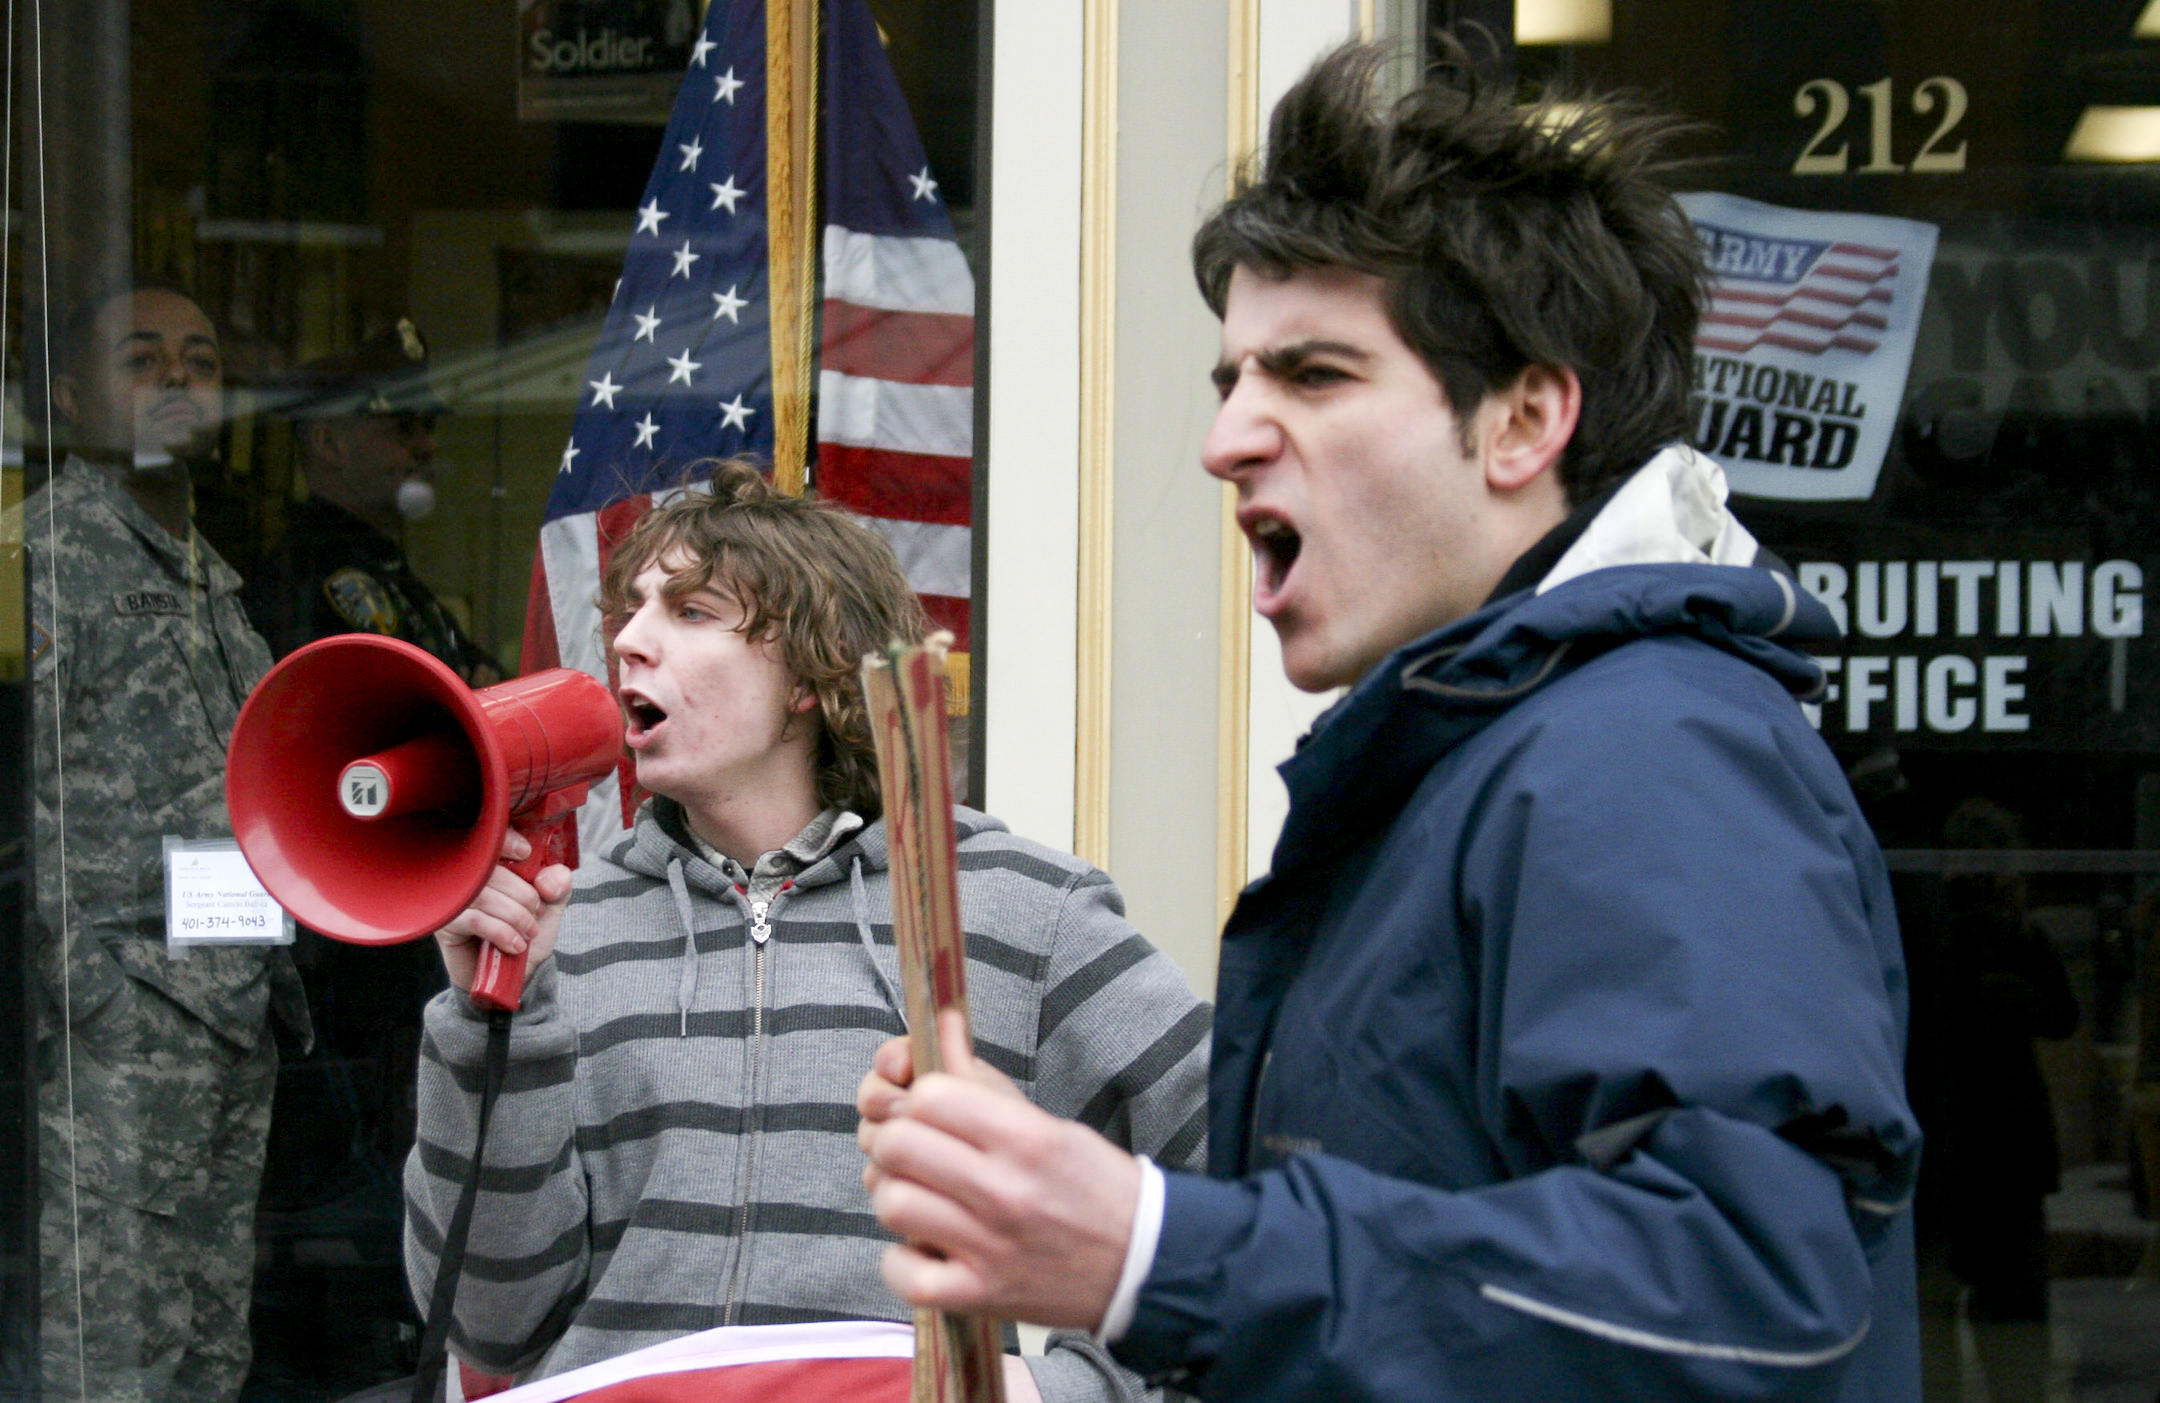 College students protest recruiting practices of a US military recruiting office in Providence, RI.